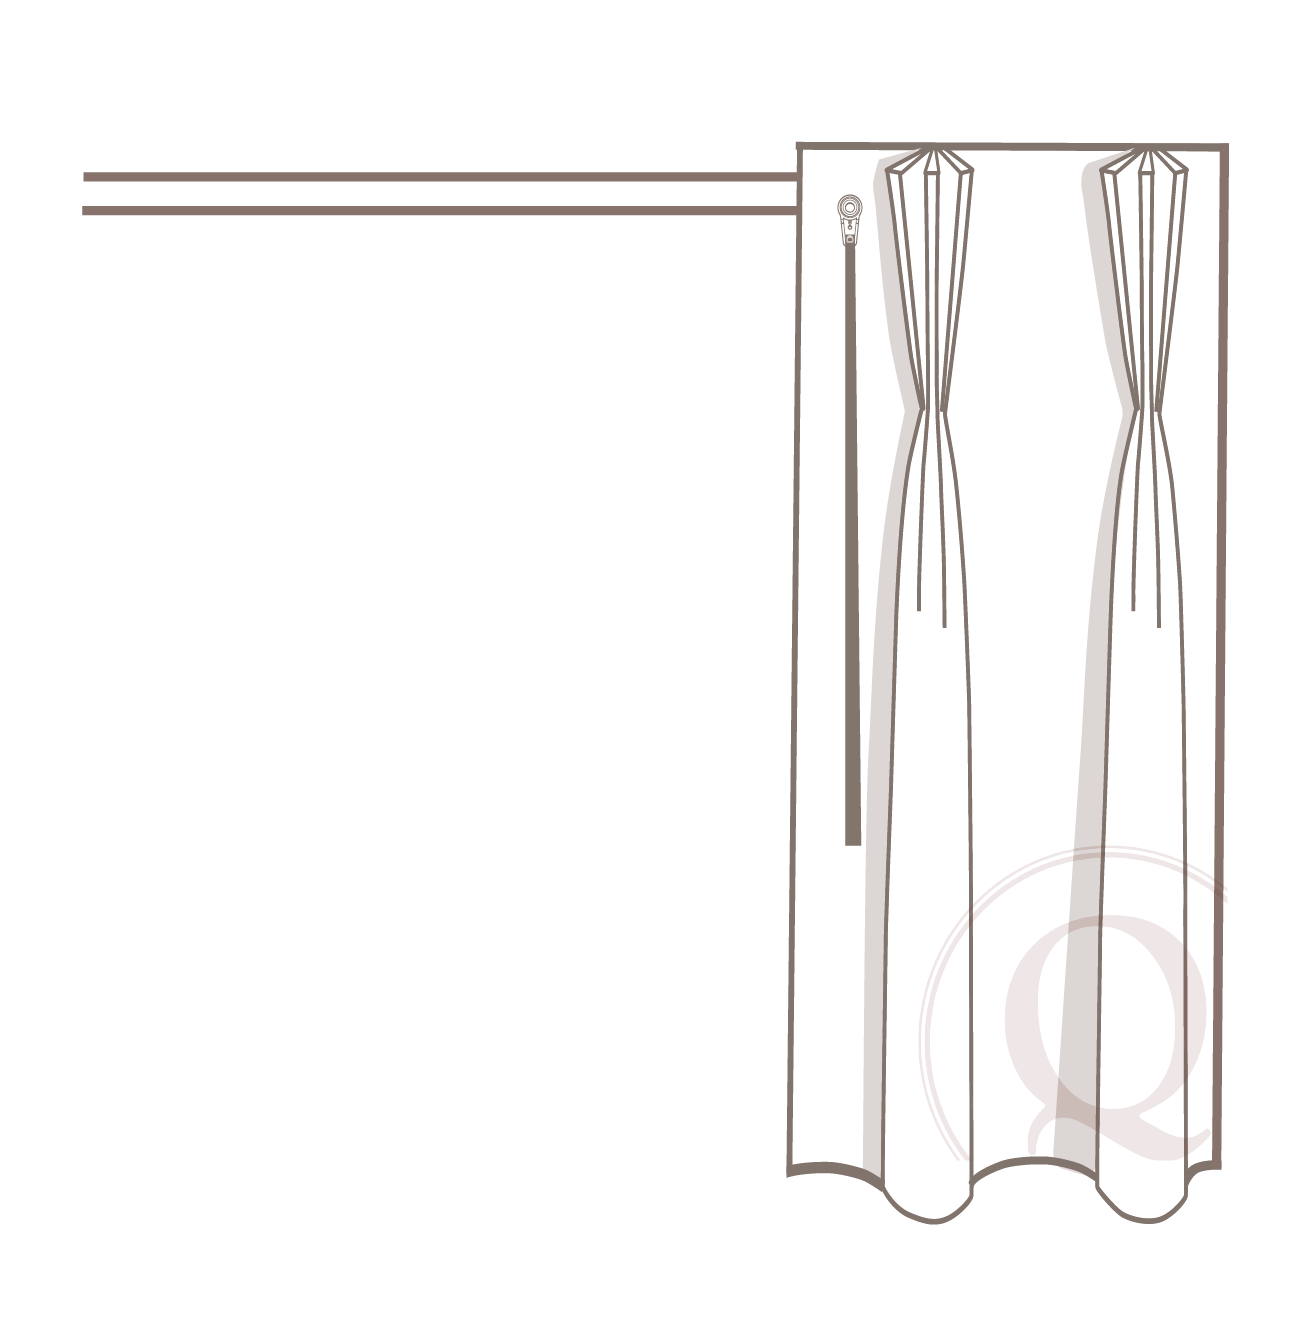 Manual/baton - Ideally, the baton attaches directly to the drape/master carrier and allows for a manual push/pull of the panel to open and close. However, the baton can be relocated to the back of the drapery for aesthetics.